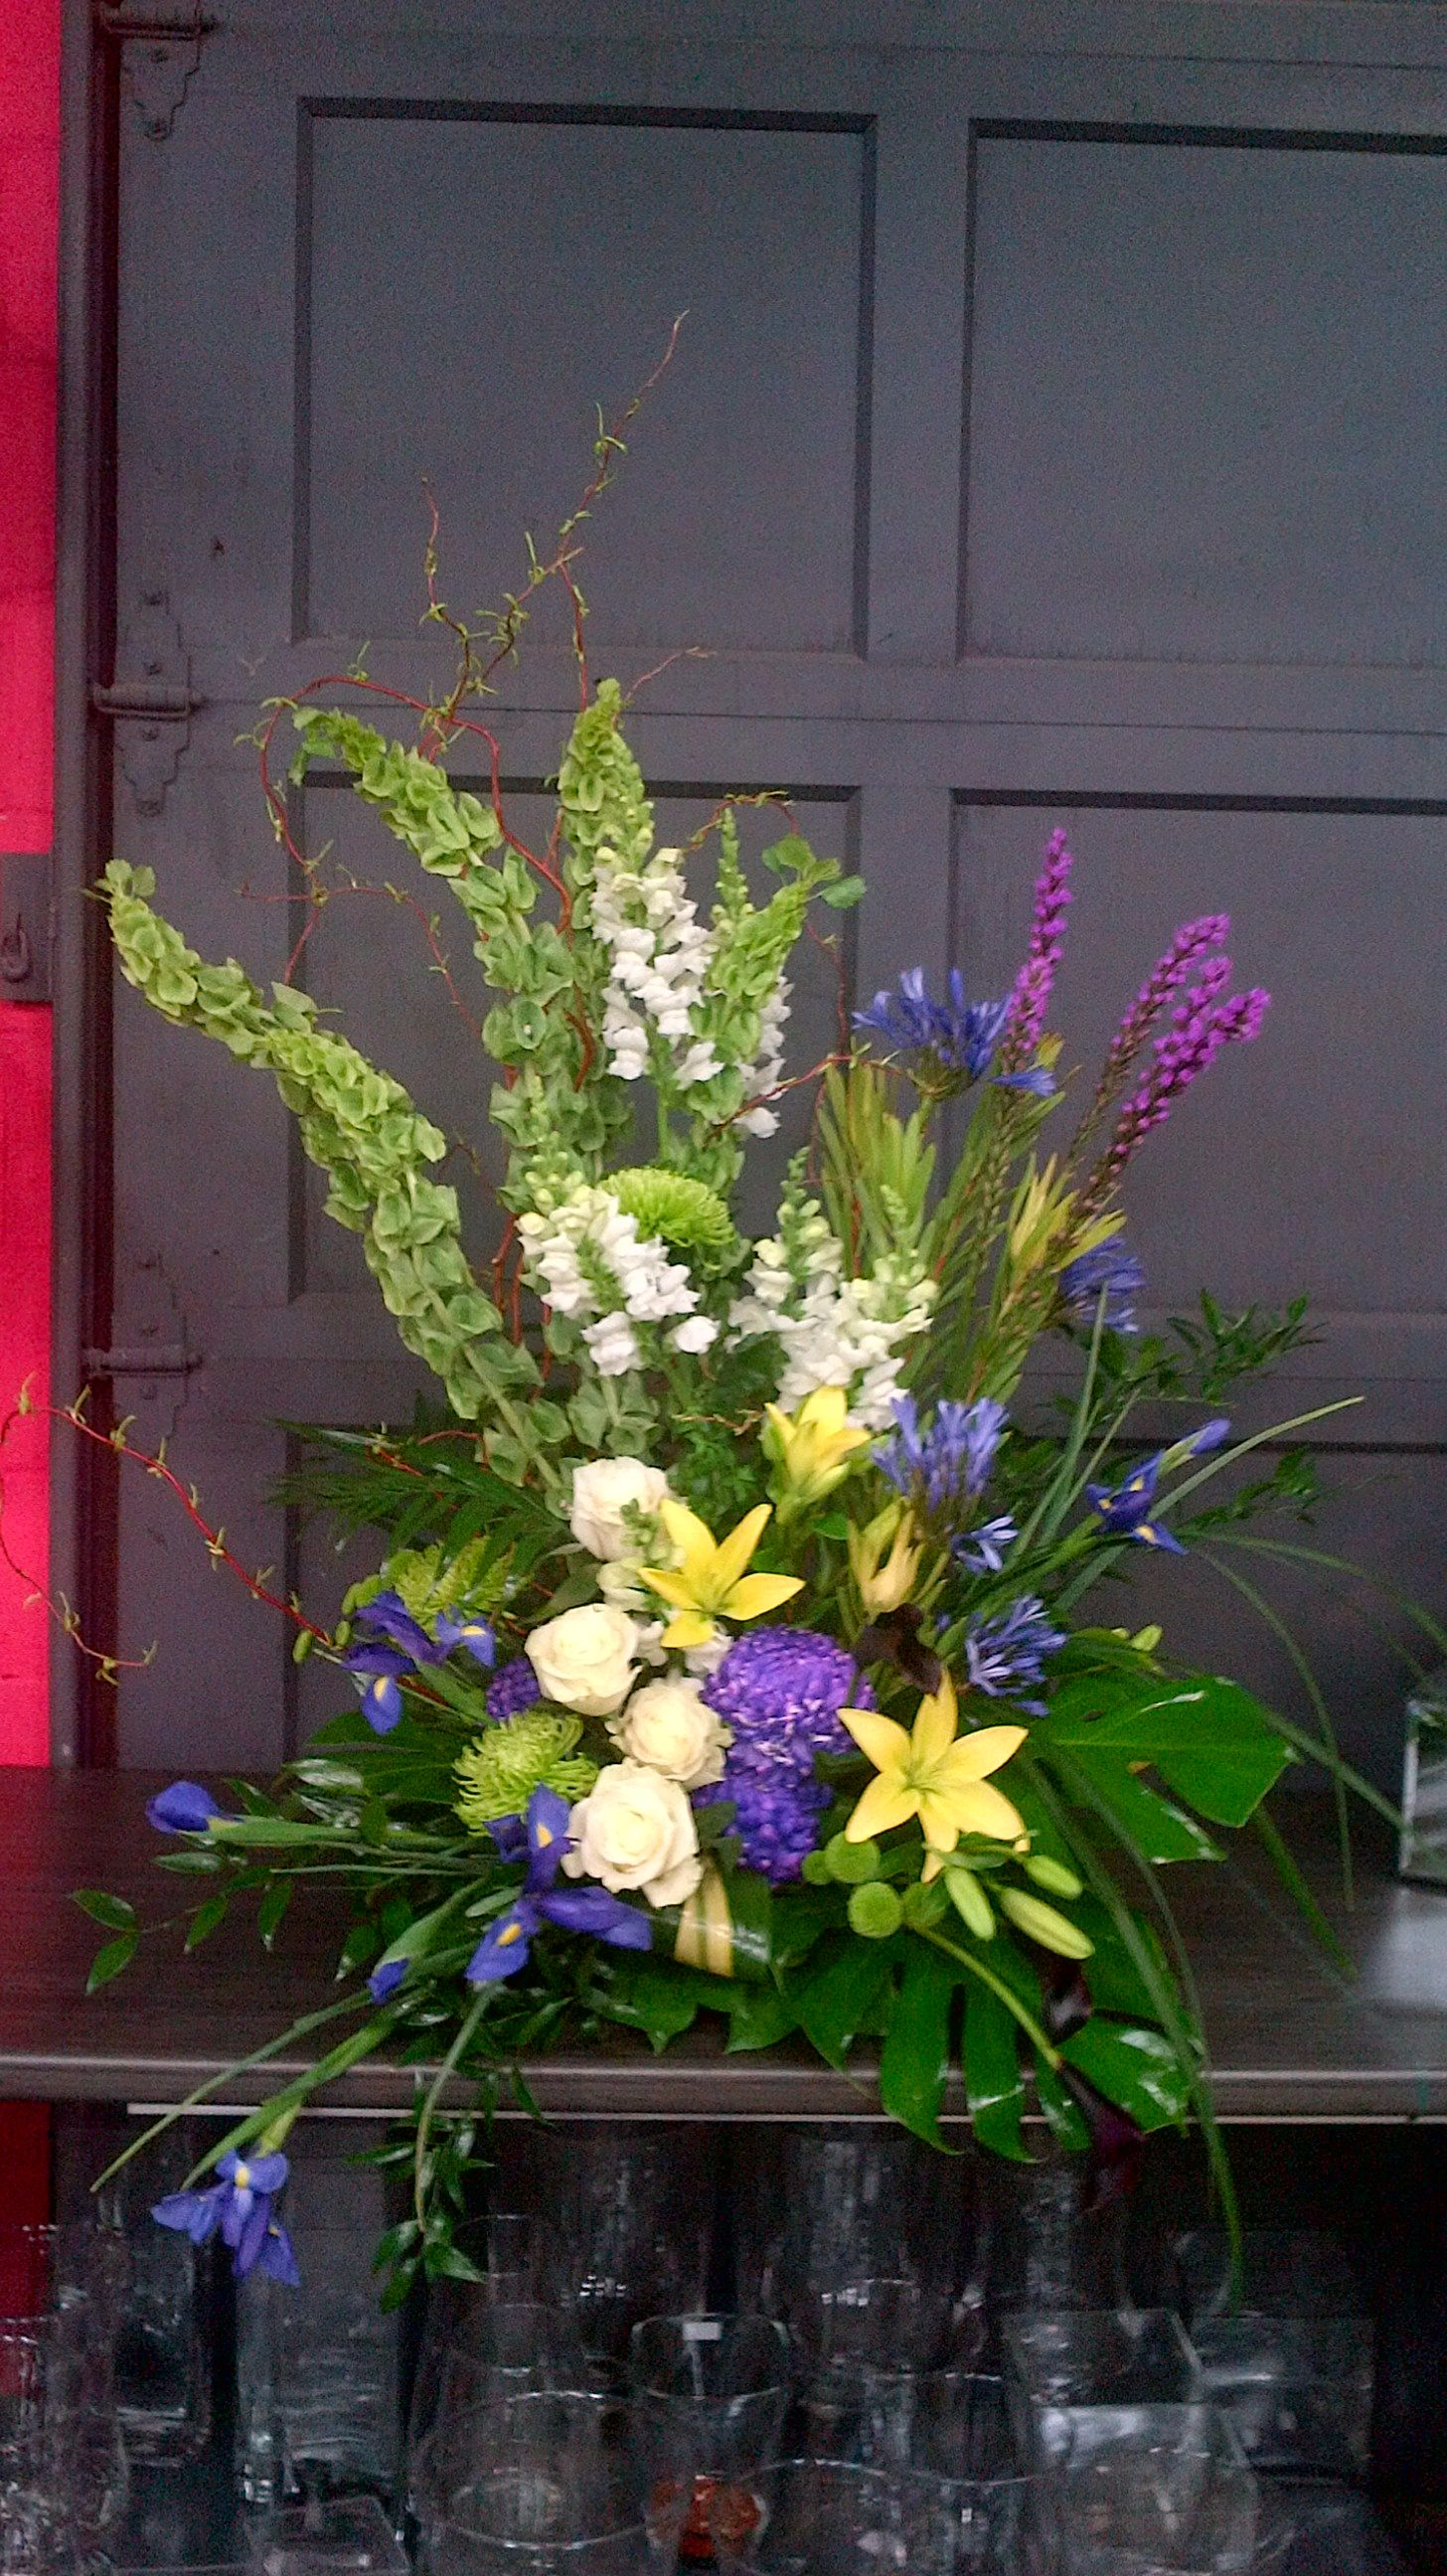 For a celebration of life. Large flower arrangements